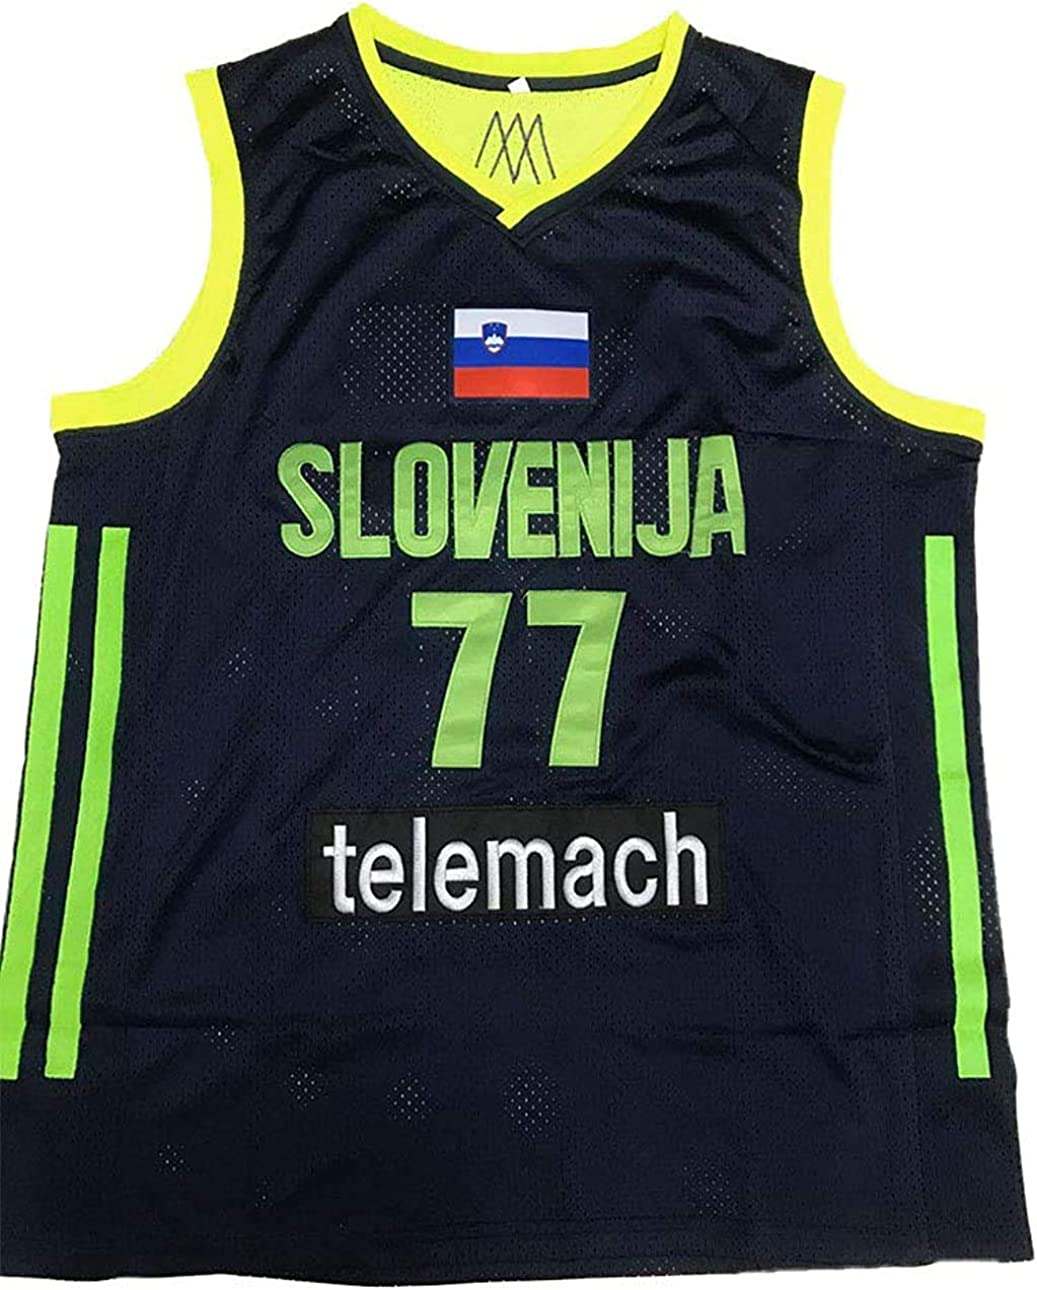 Luka Doncic Stitch Indianapolis Mall Euro Basketball XS-3 League Jersey Patch Sale item Neon